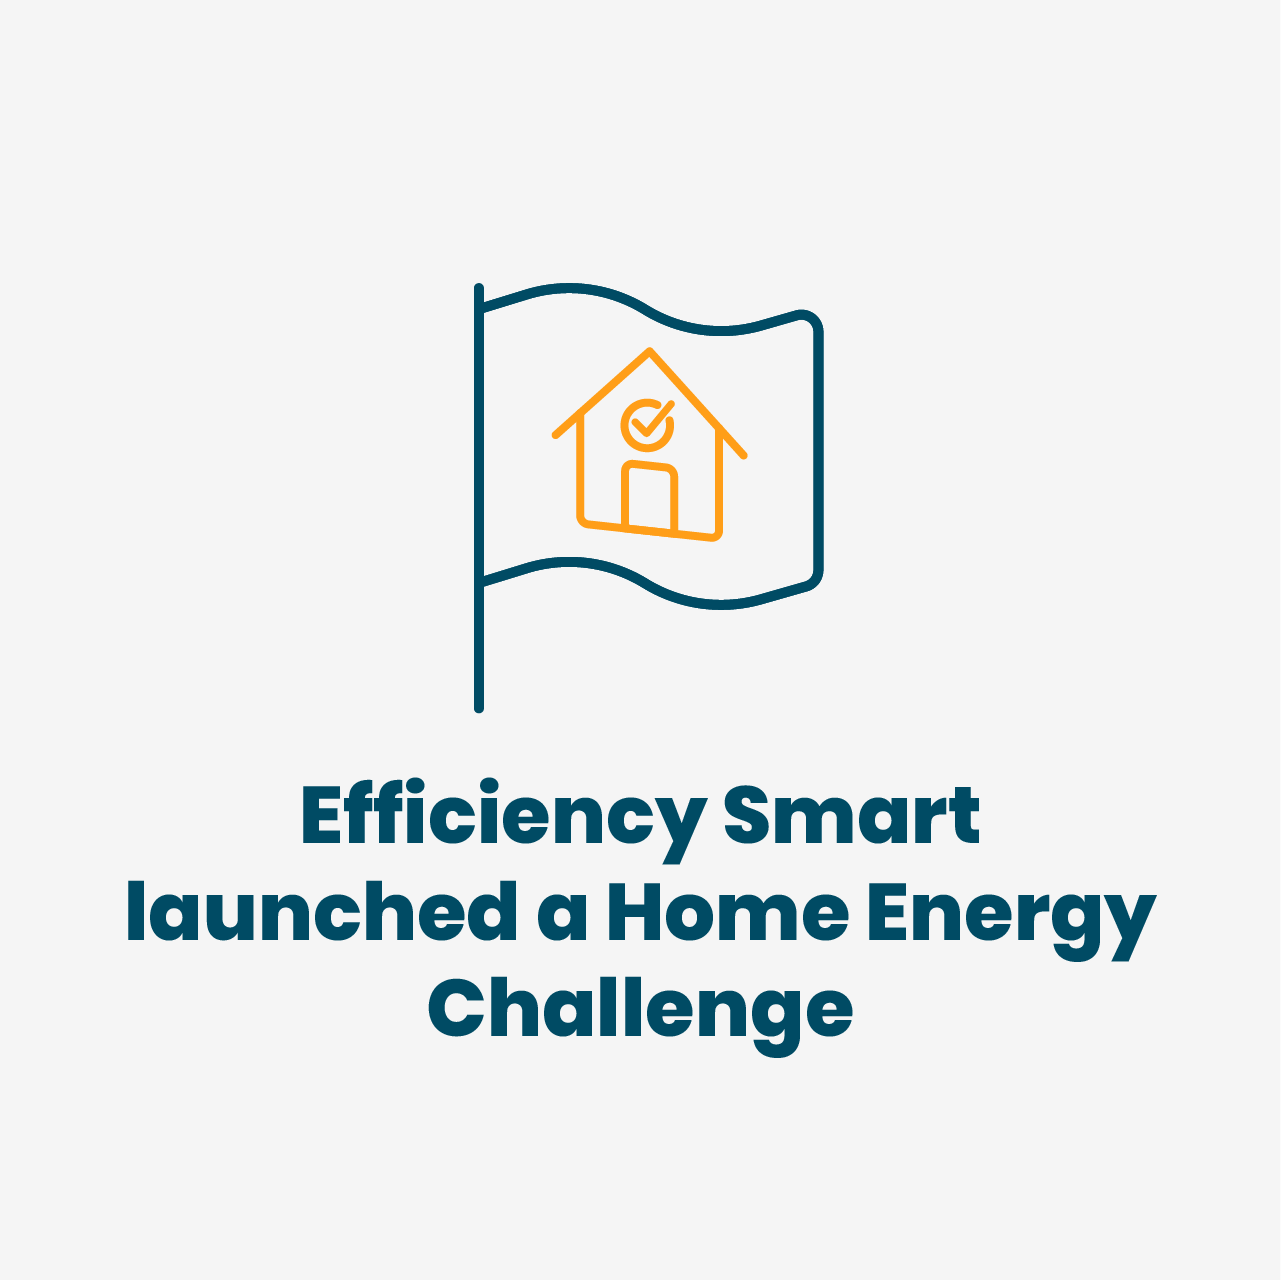 Efficiency Smart launched a home energy challenge